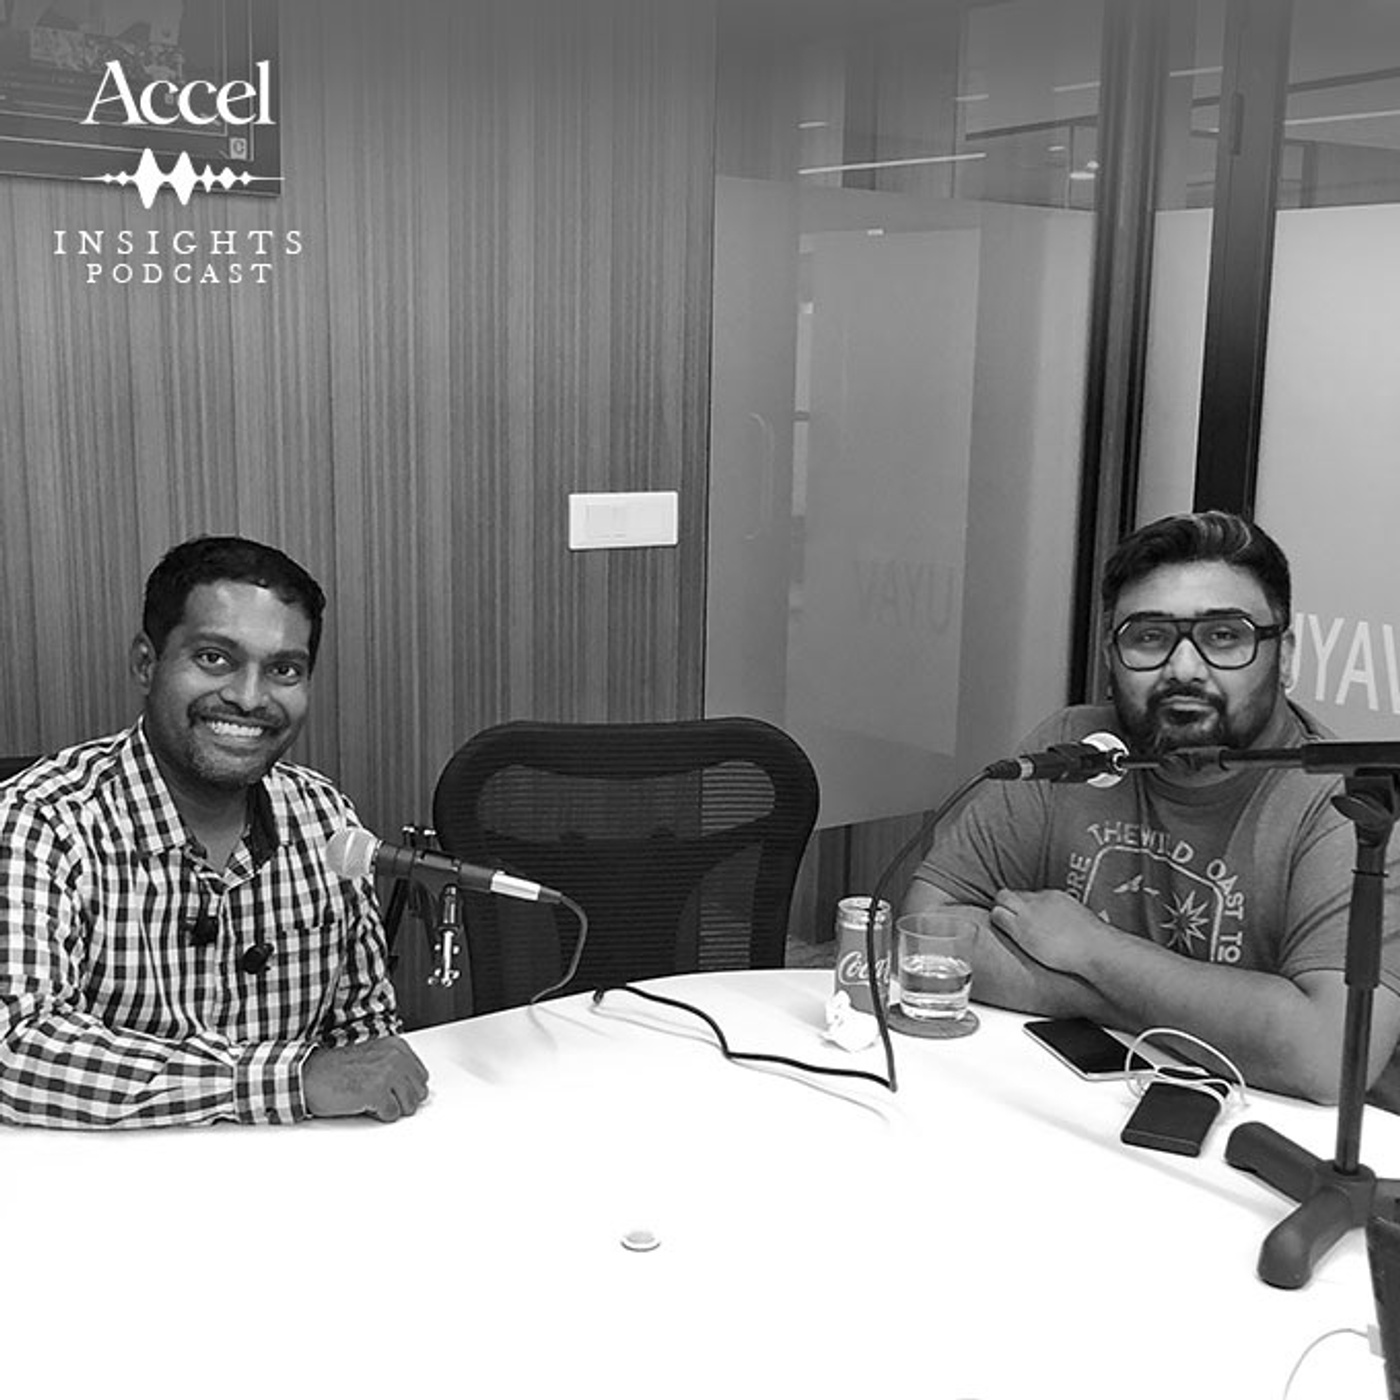 INSIGHTS #25 — Kunal Shah shares anecdotes from his entrepreneurial journey